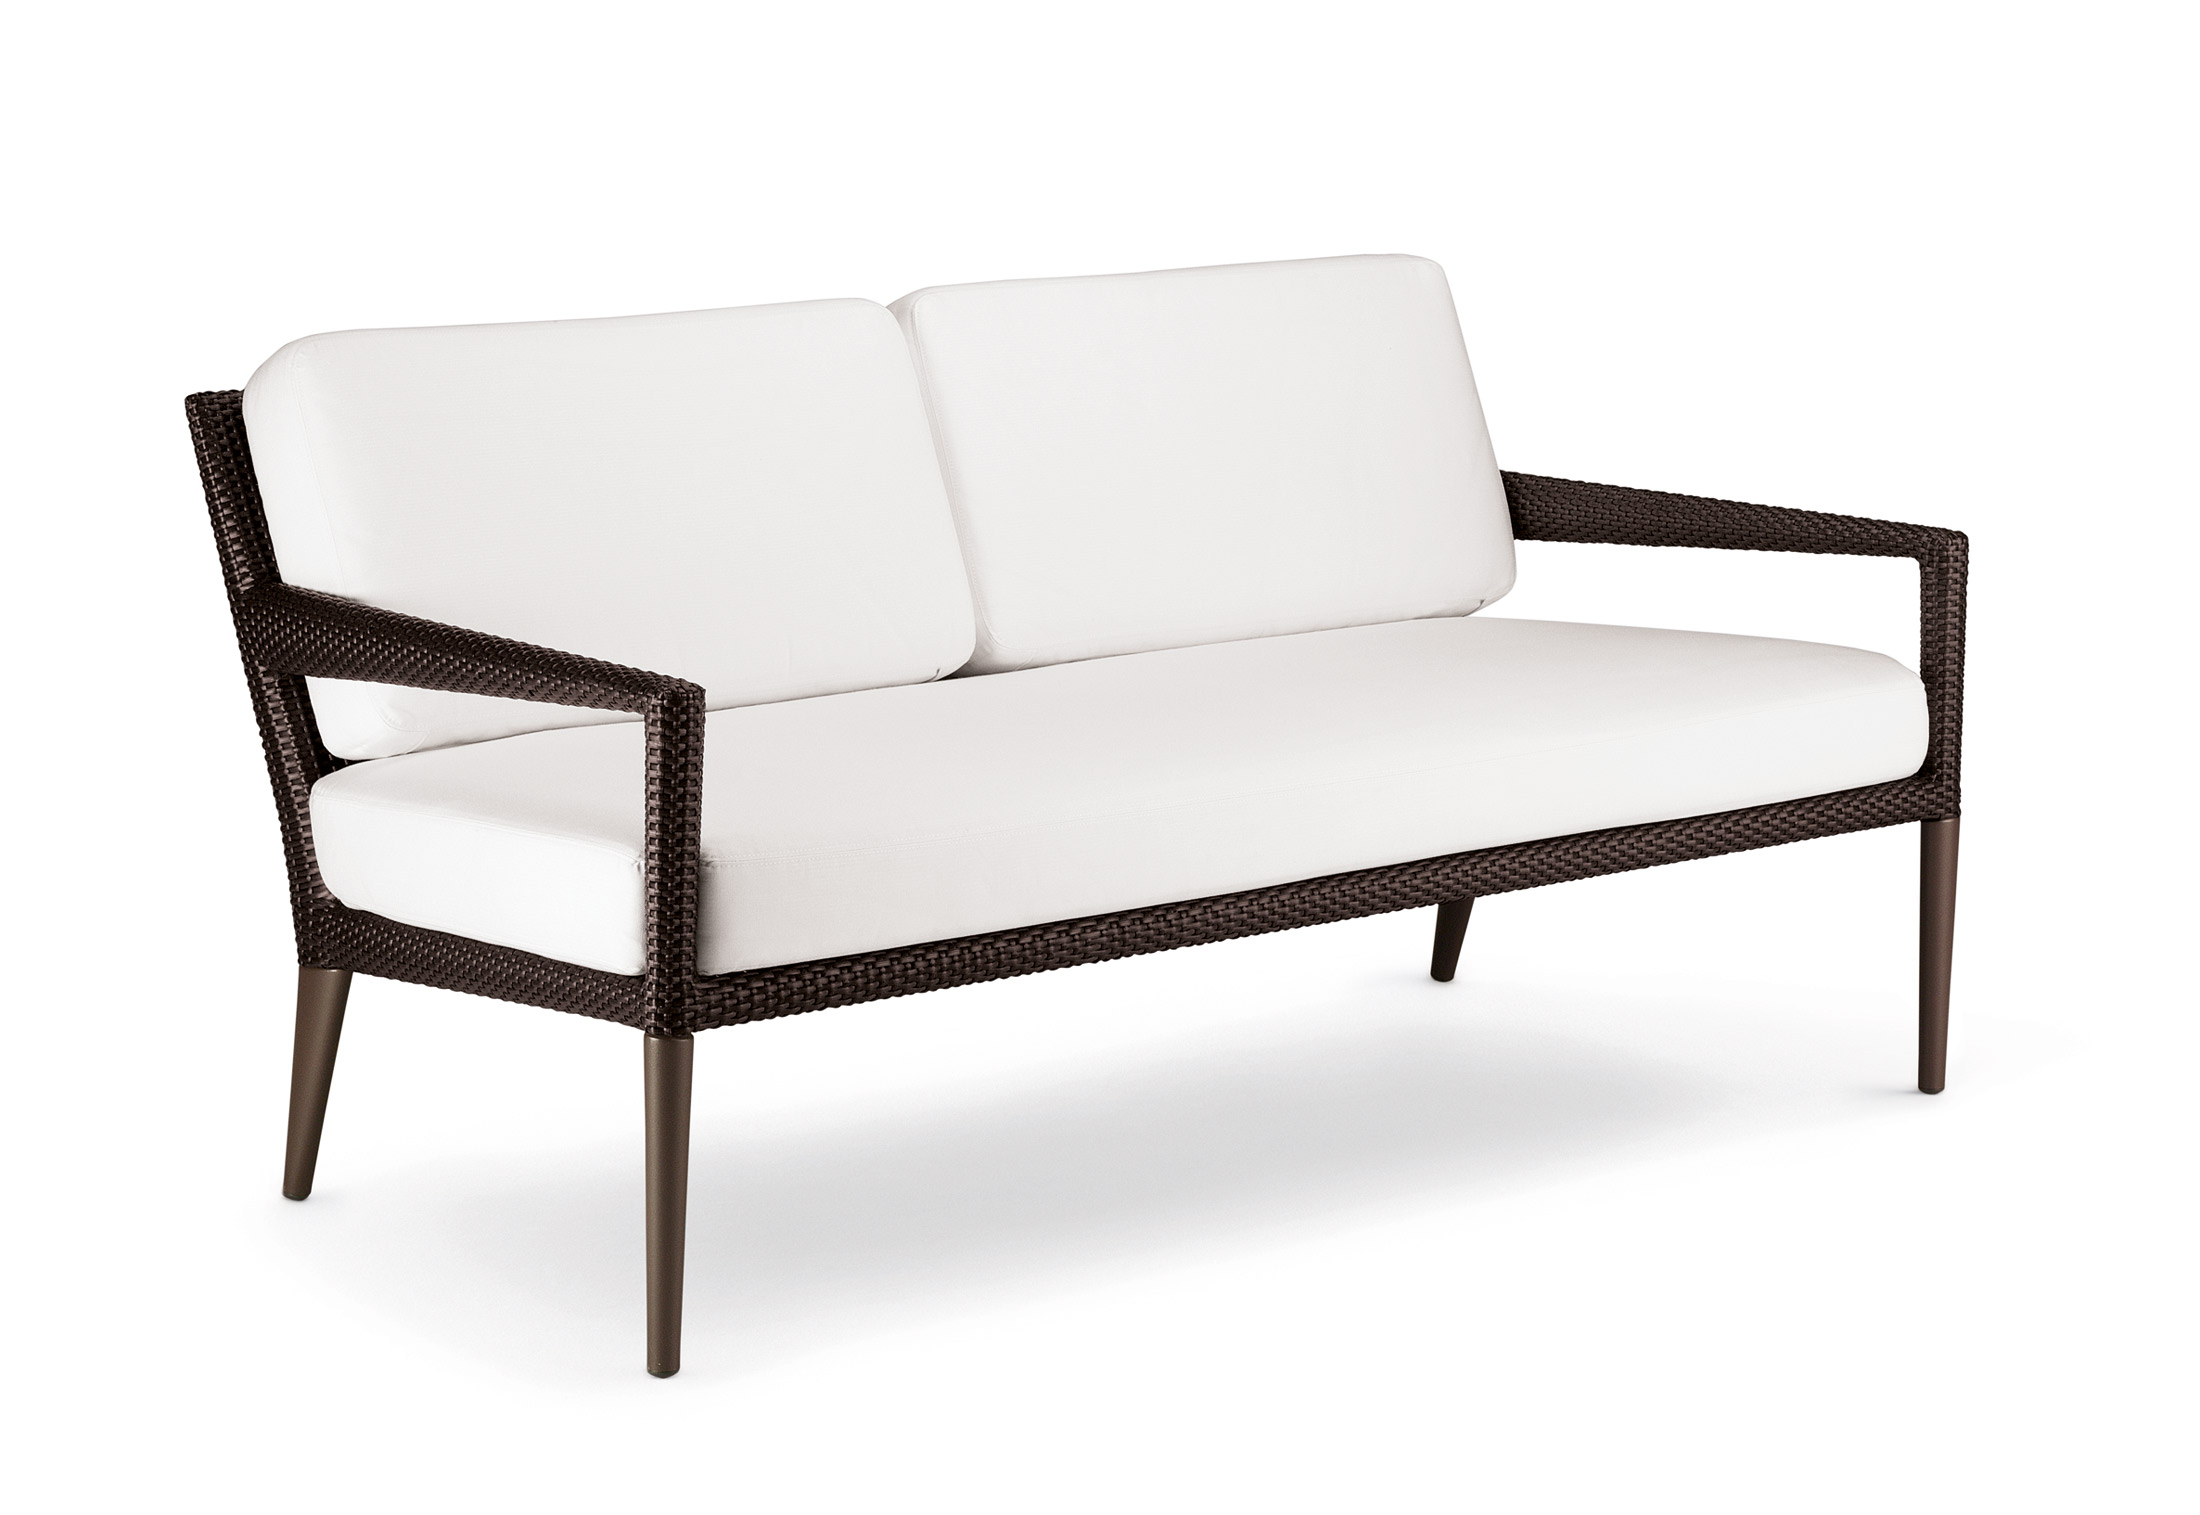 TRIBECA 2-seater by DEDON | STYLEPARK